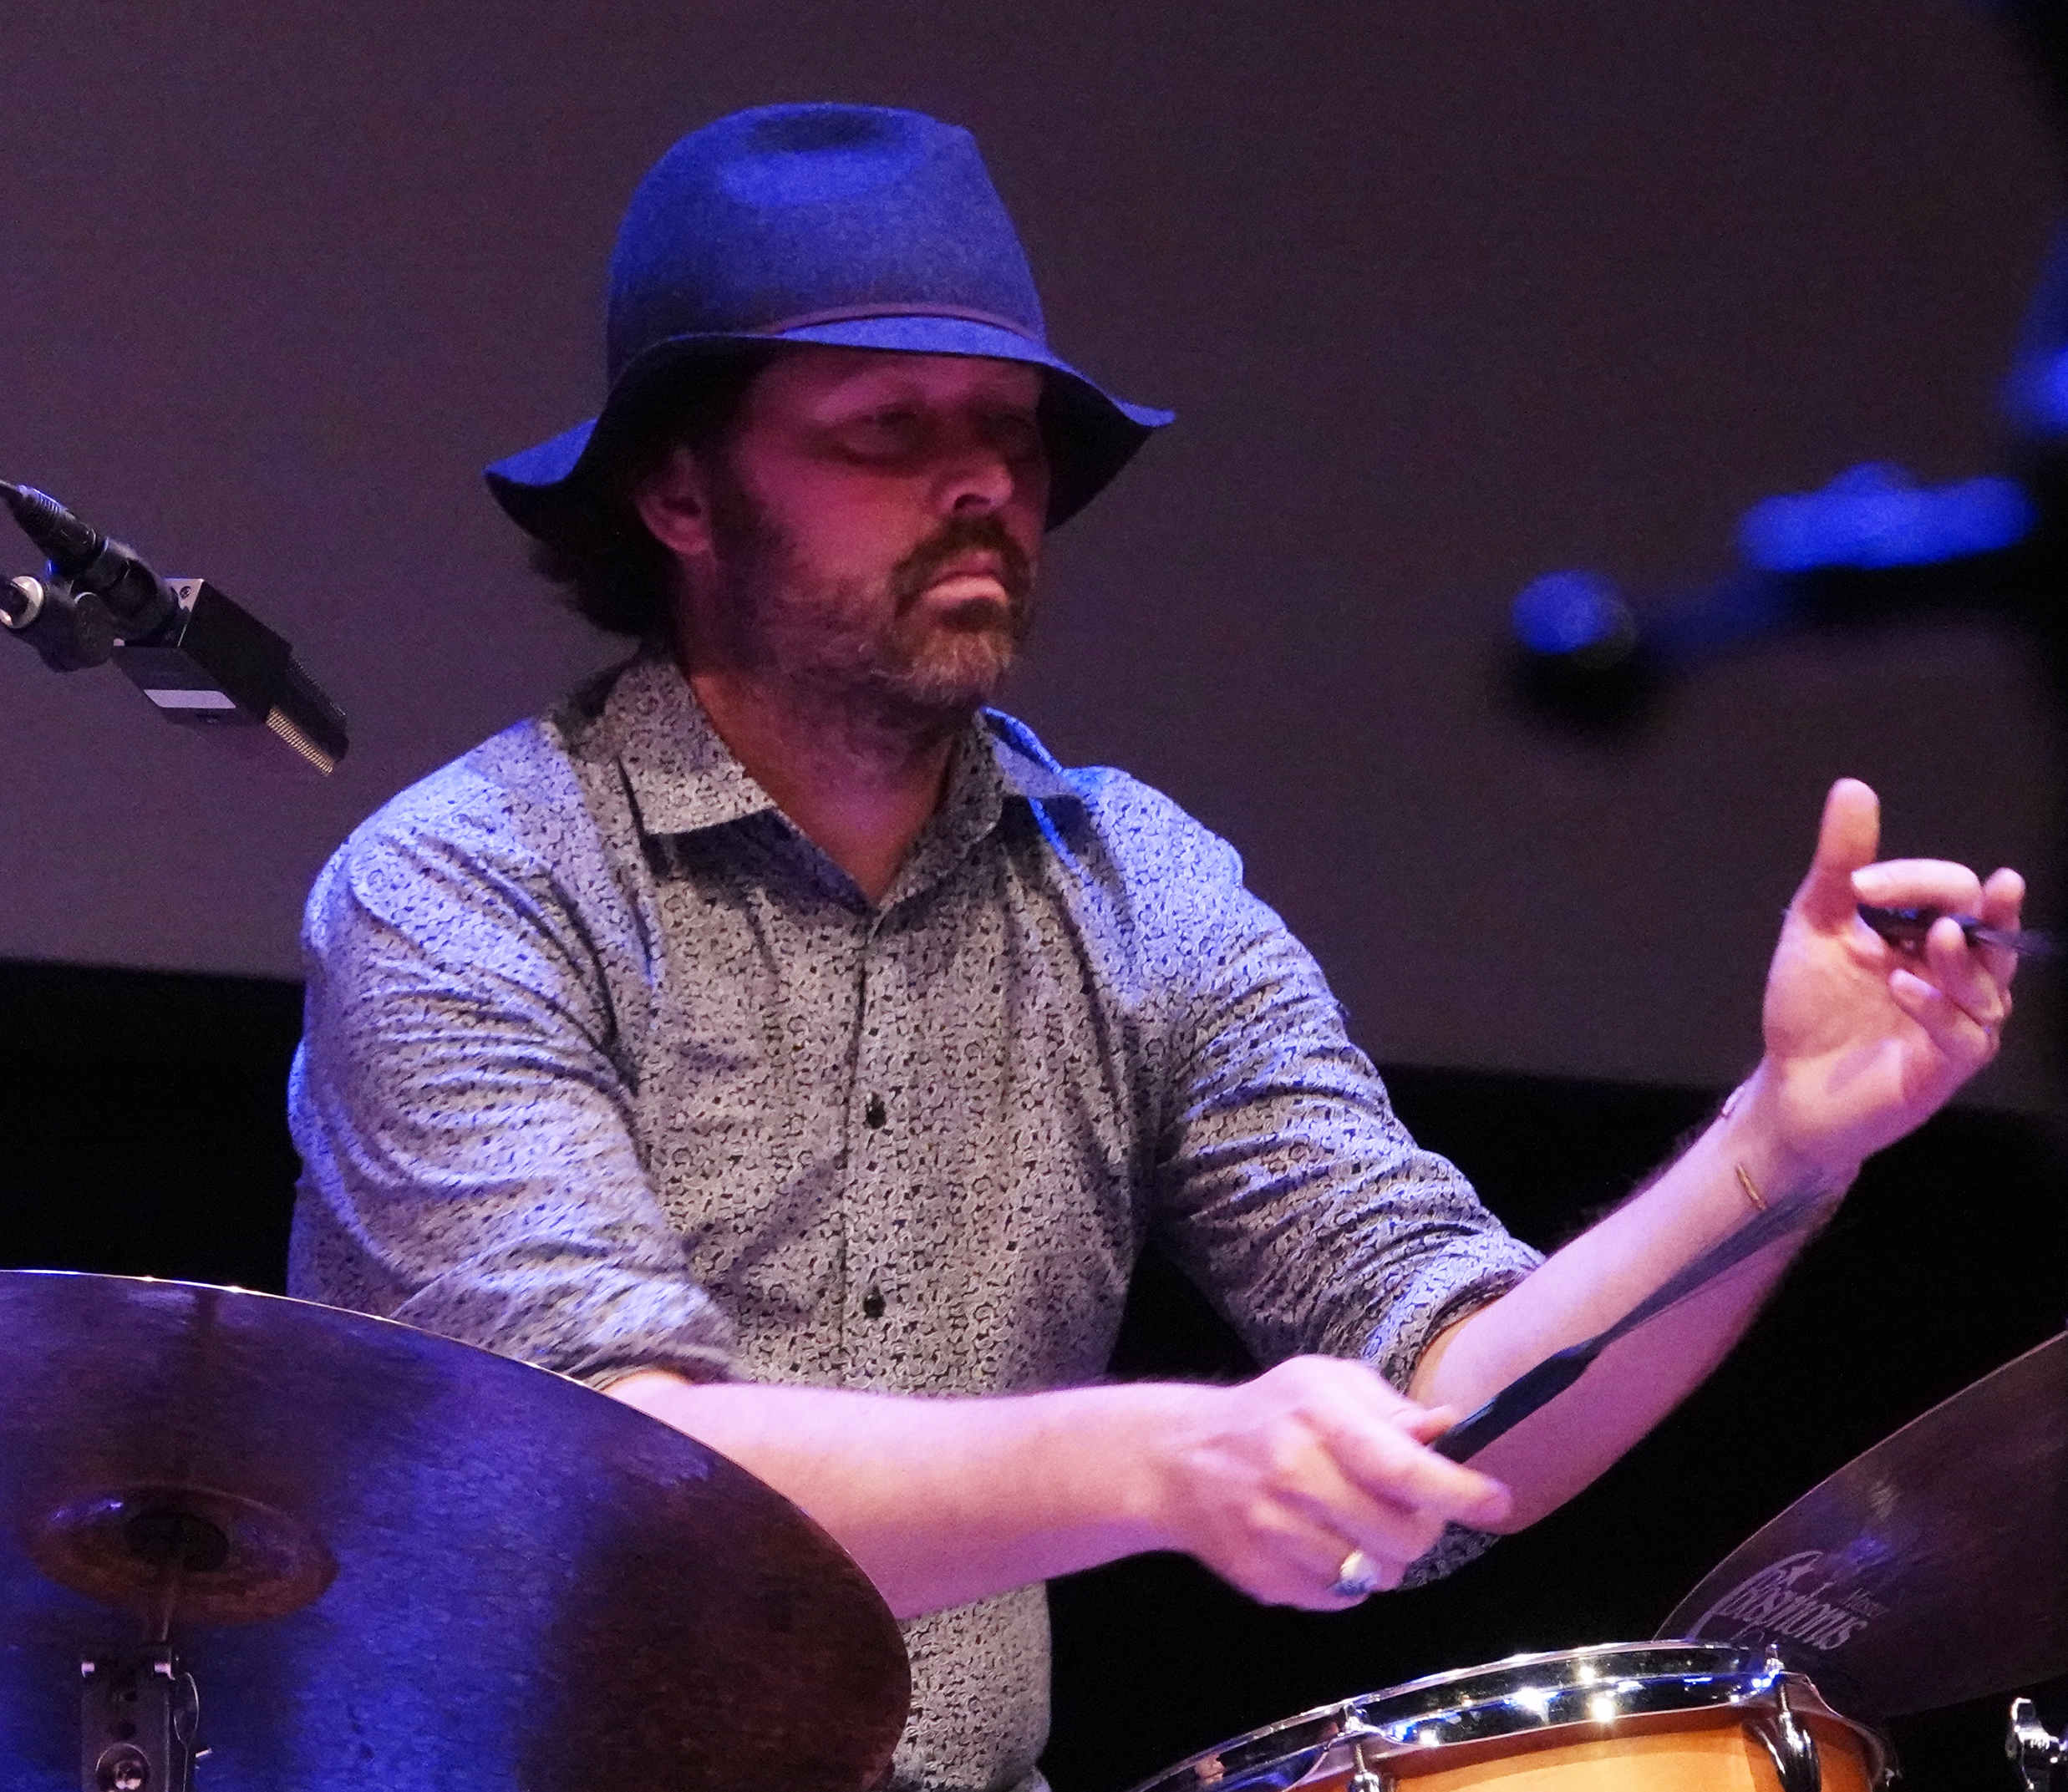 Jeremy Carlstedt at 24th Annual Vision Festival